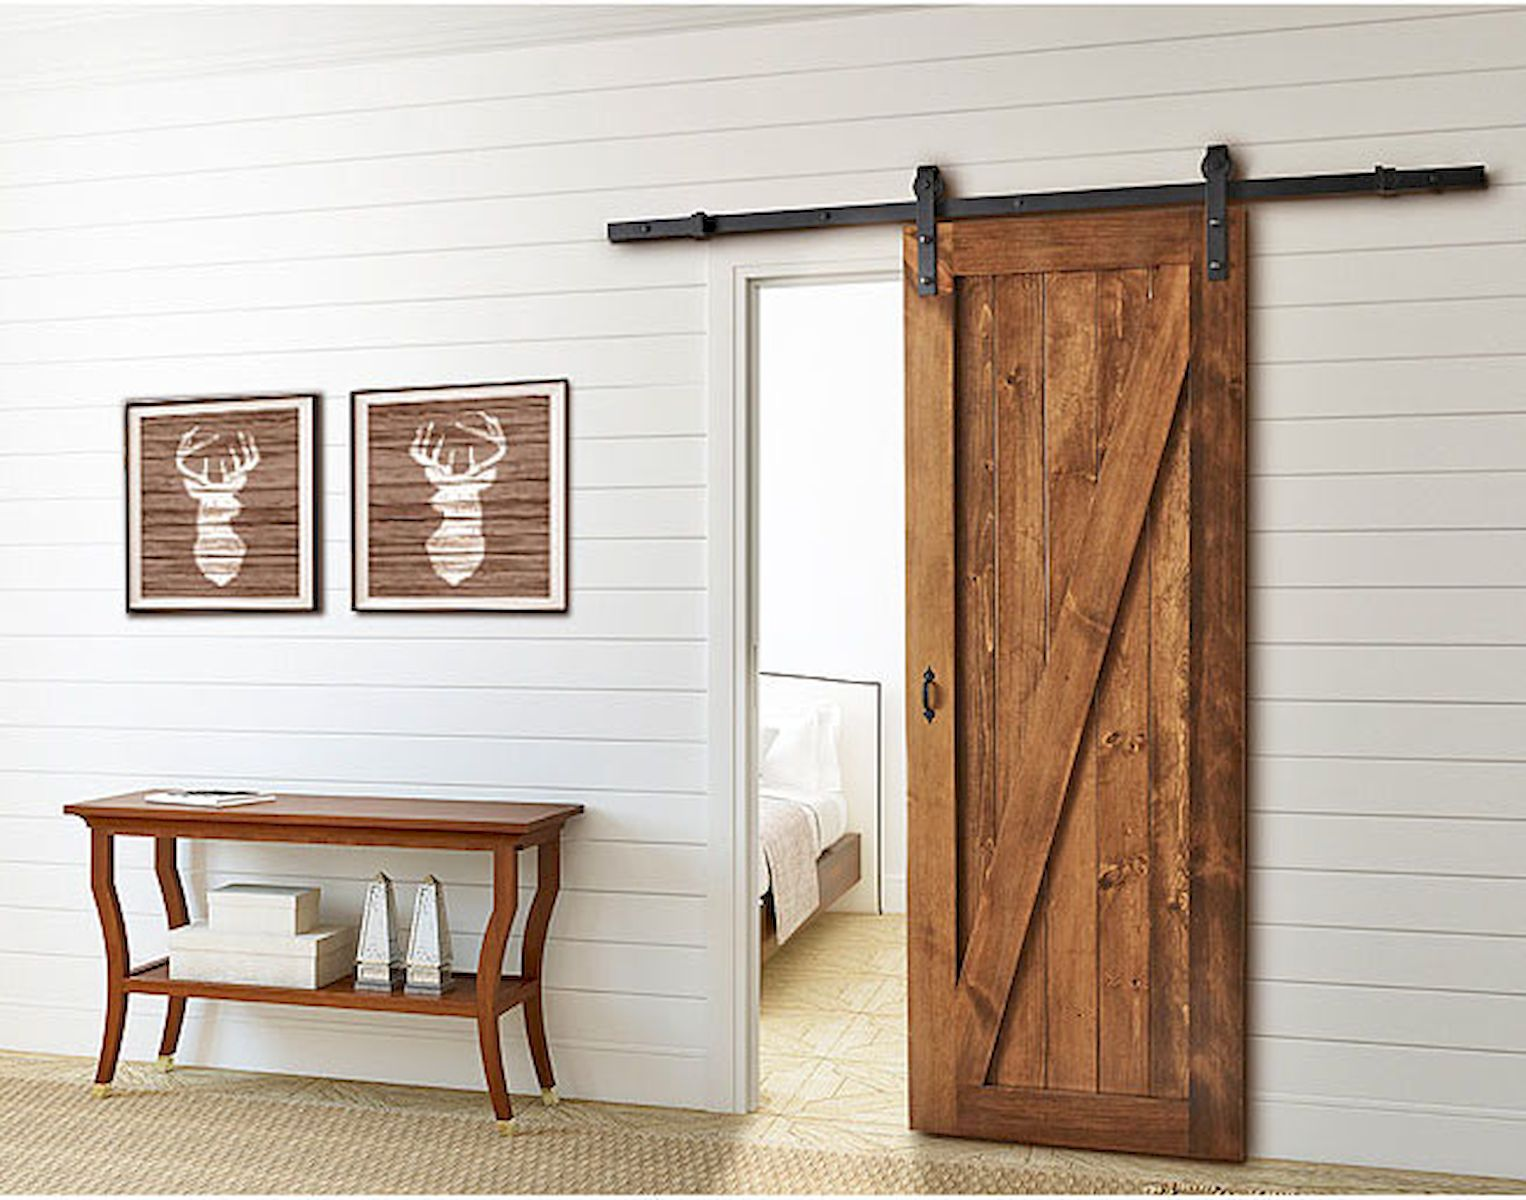 70 Rustic Home Decor Ideas for Doors and Windows (70)